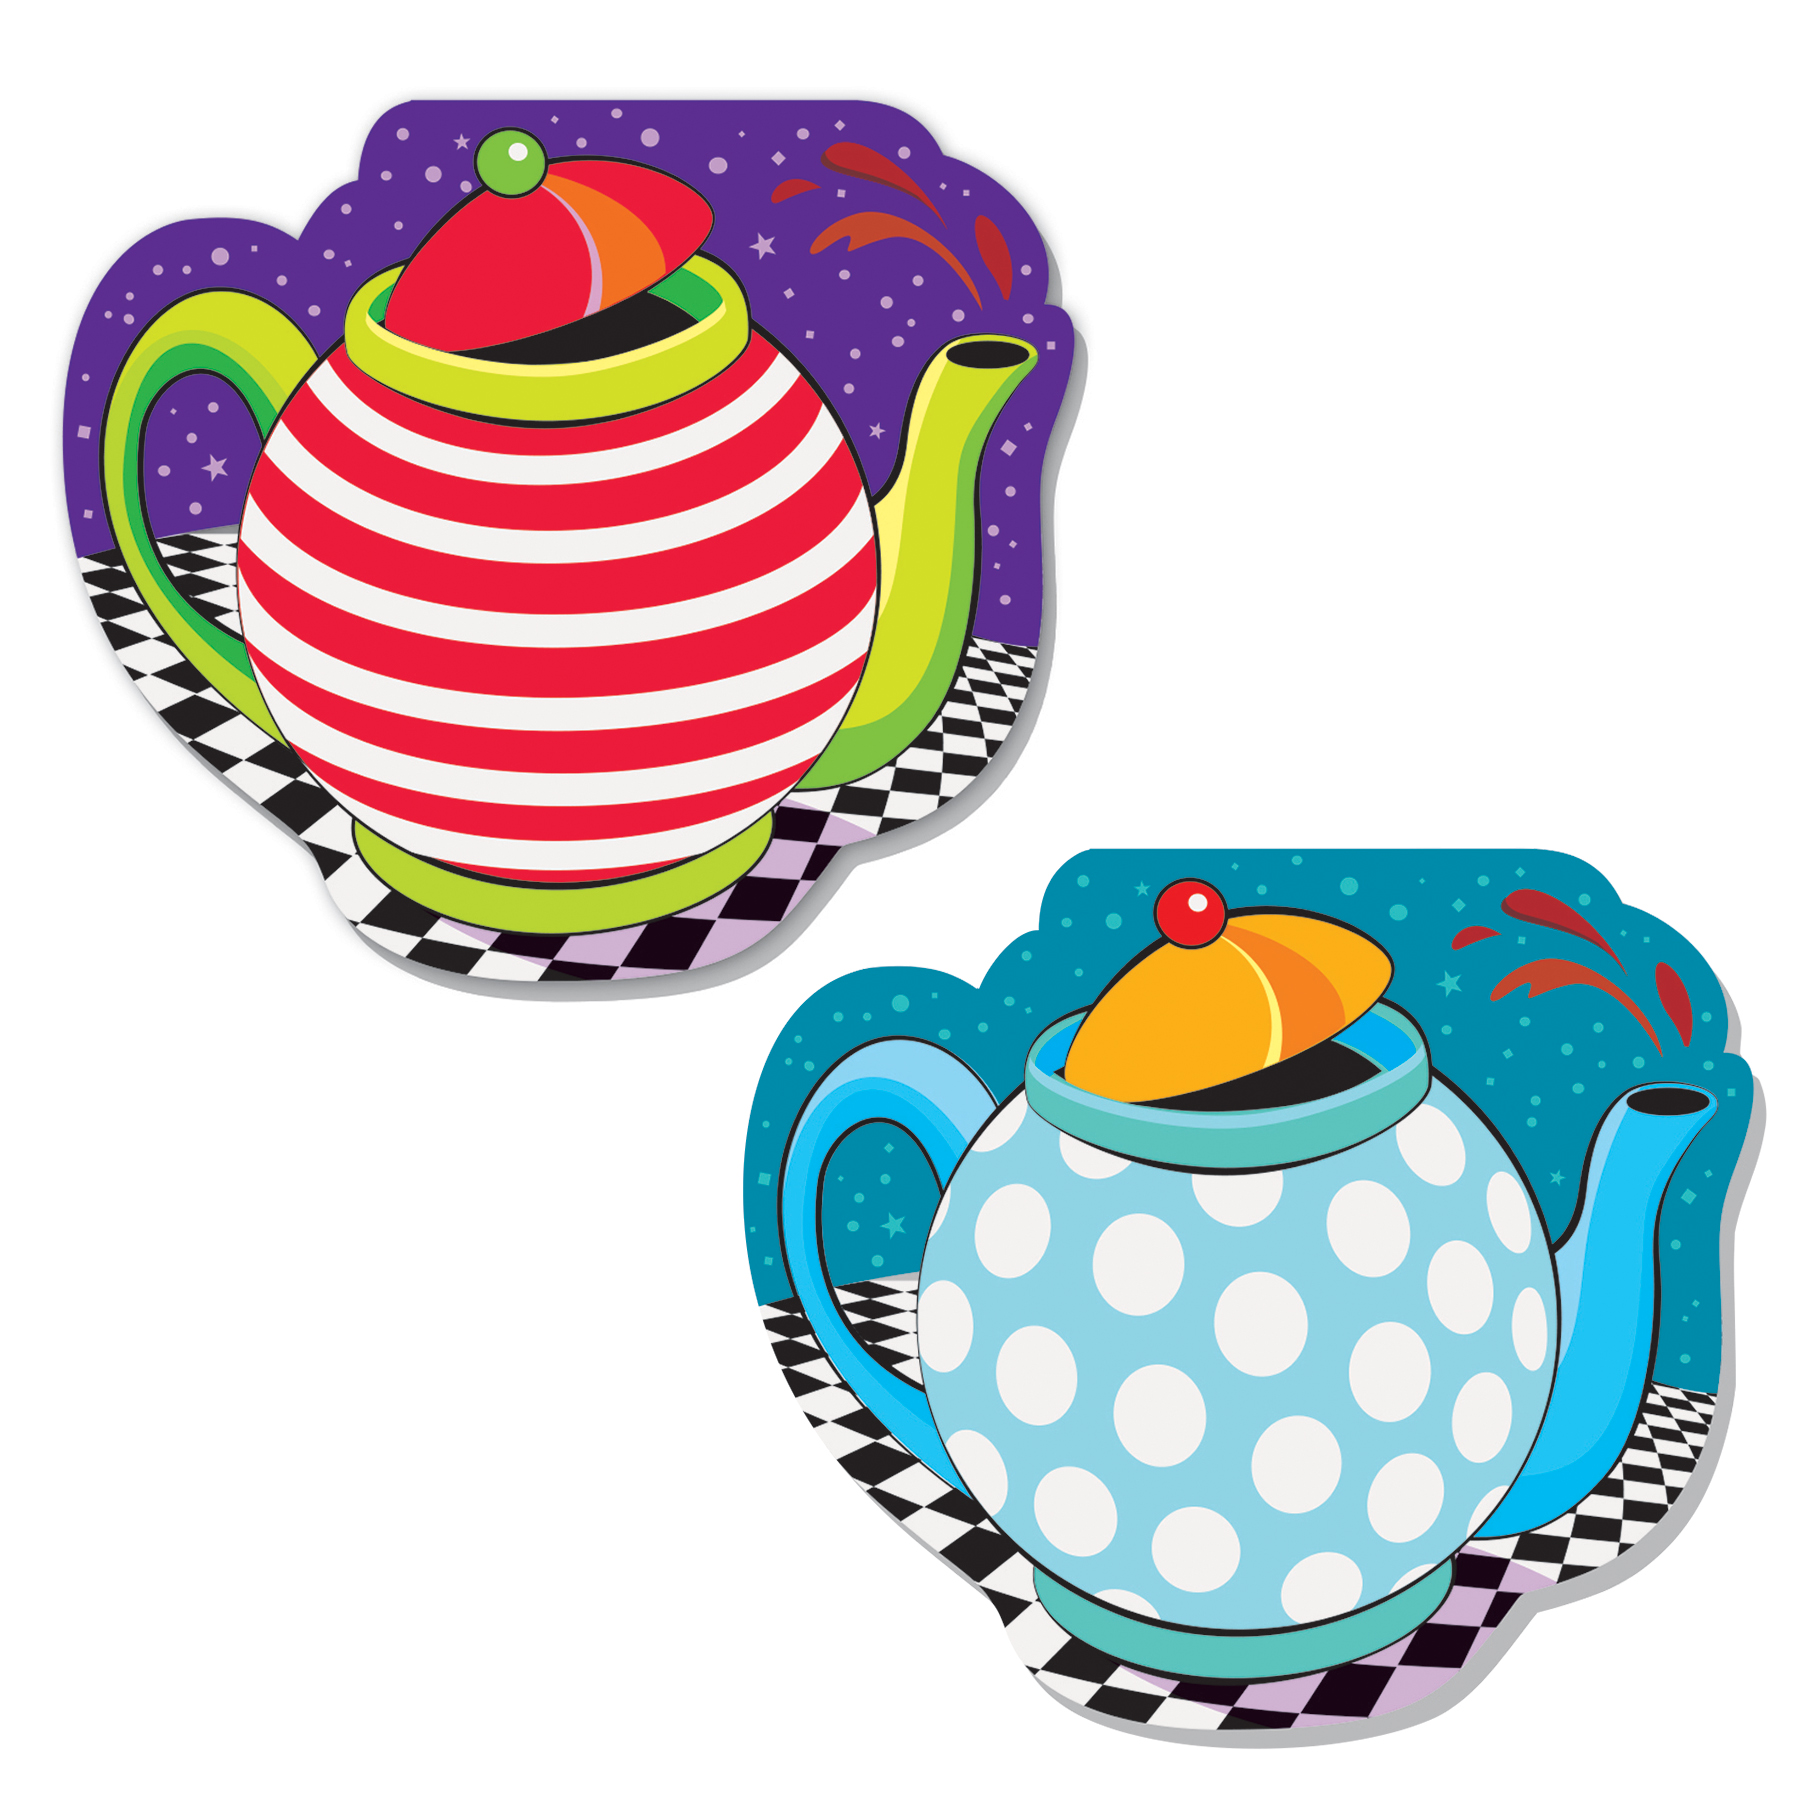 Alice in the wonderland tea cup clipart picture library download Mad Hatter Tea Party Clipart | Free download best Mad Hatter Tea ... picture library download